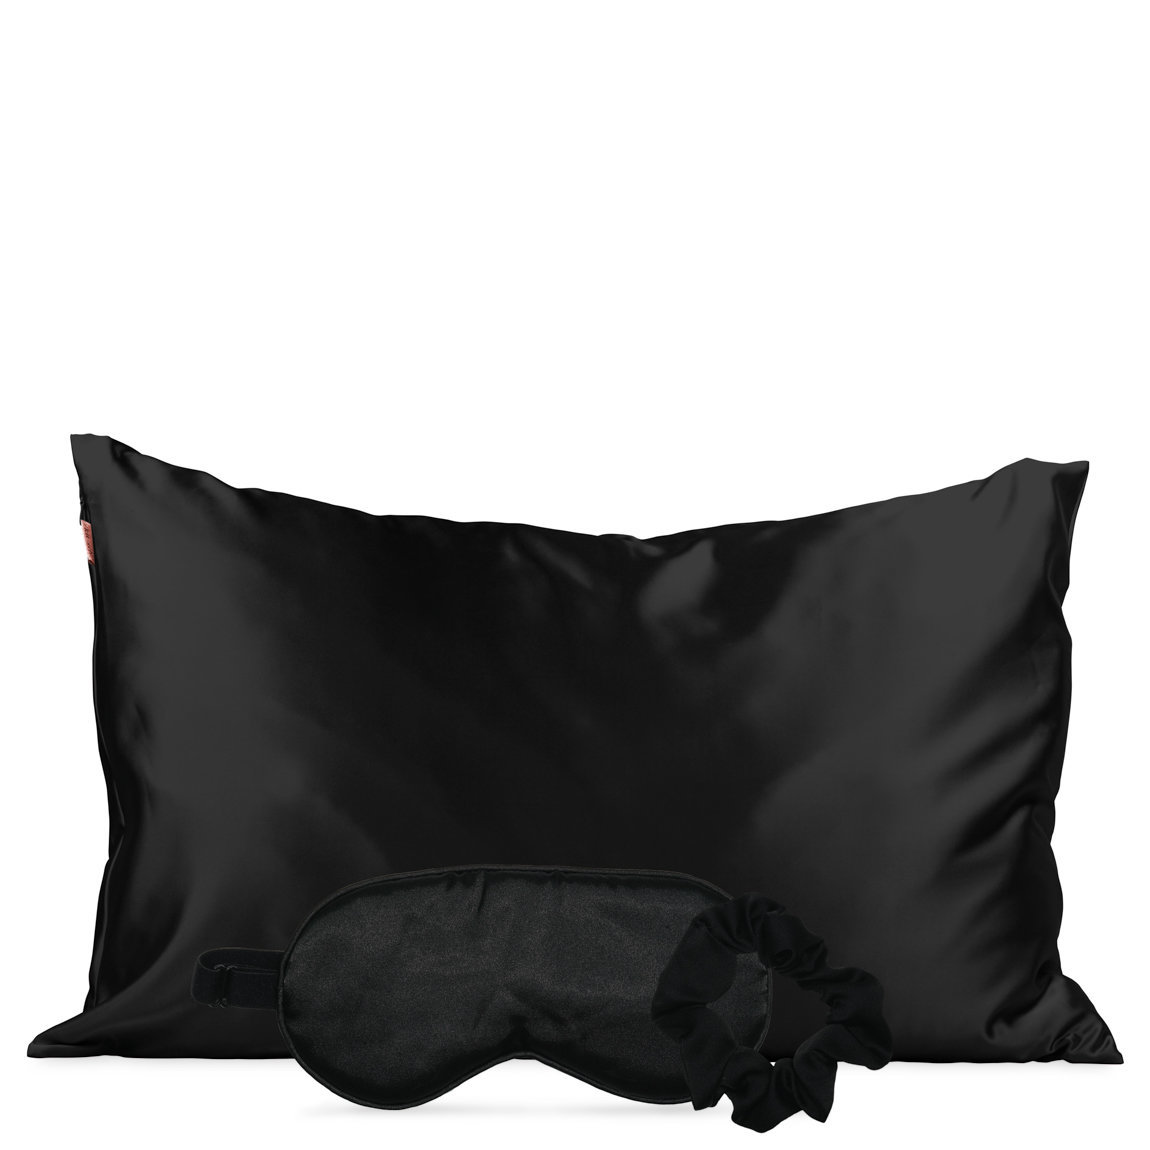 Kitsch Satin Sleep Set Black alternative view 1 - product swatch.